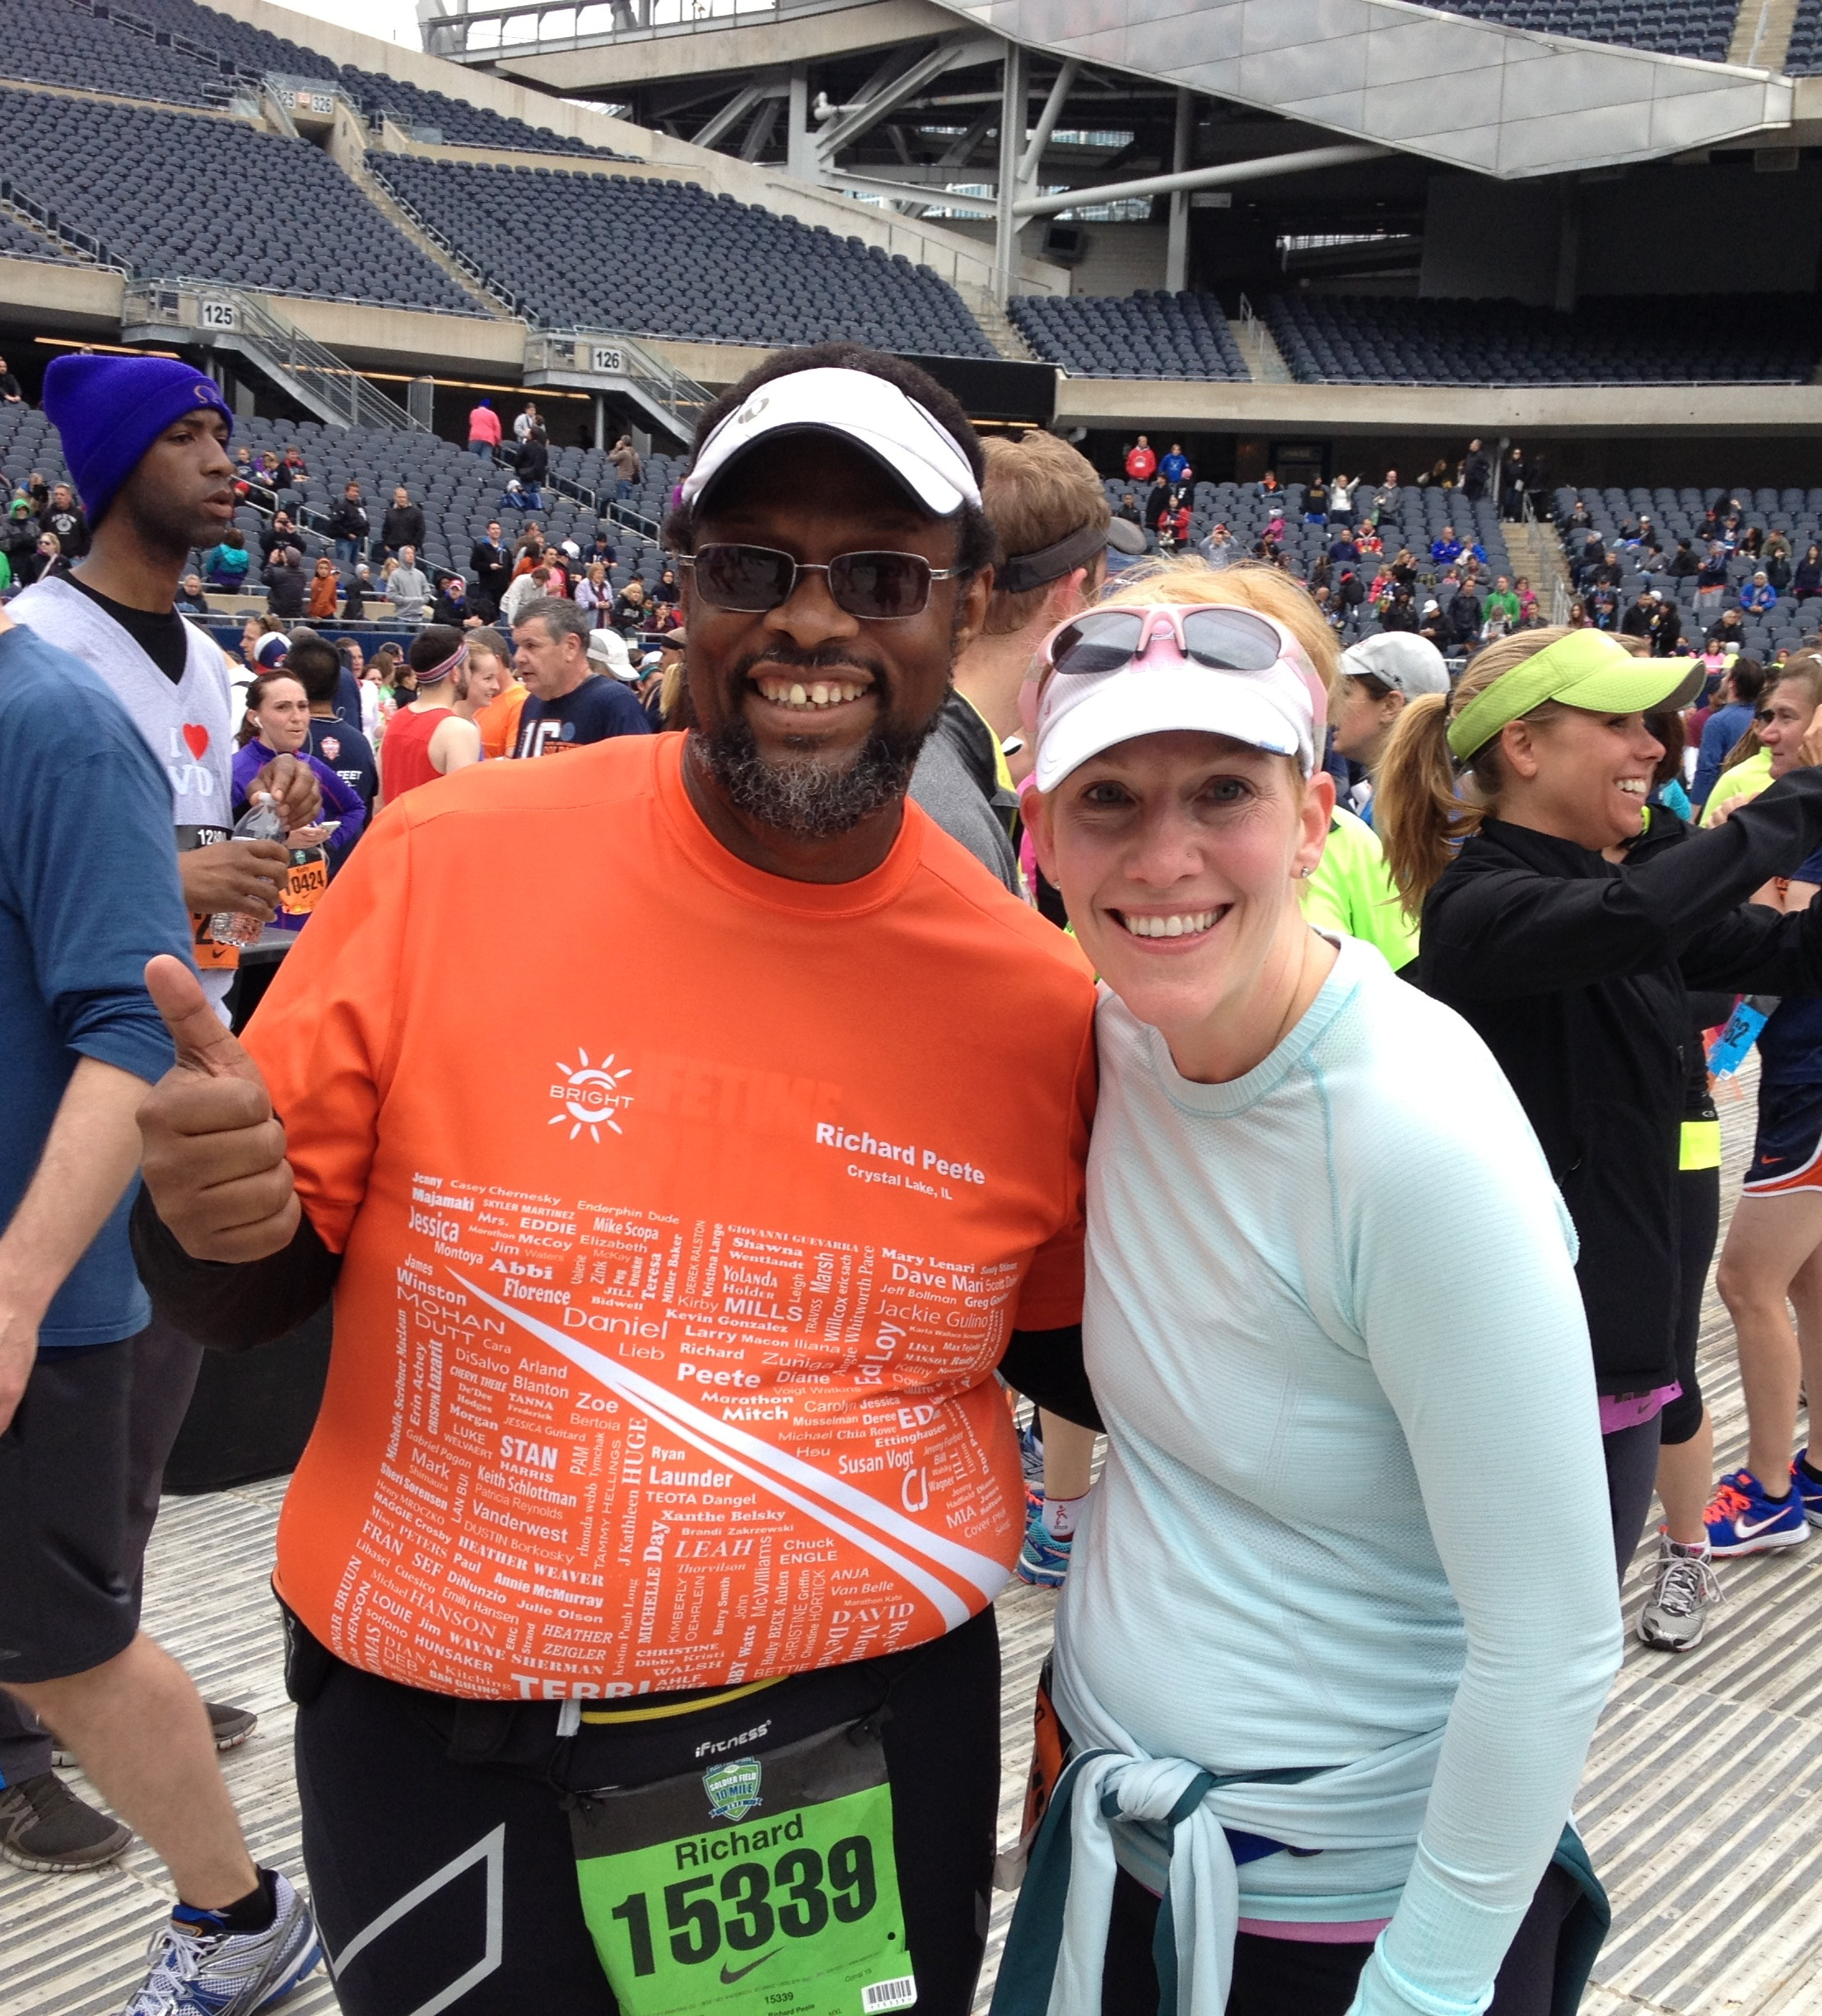 Meghan and I at the Finish of the 2013 Soldier Field 10-Miler